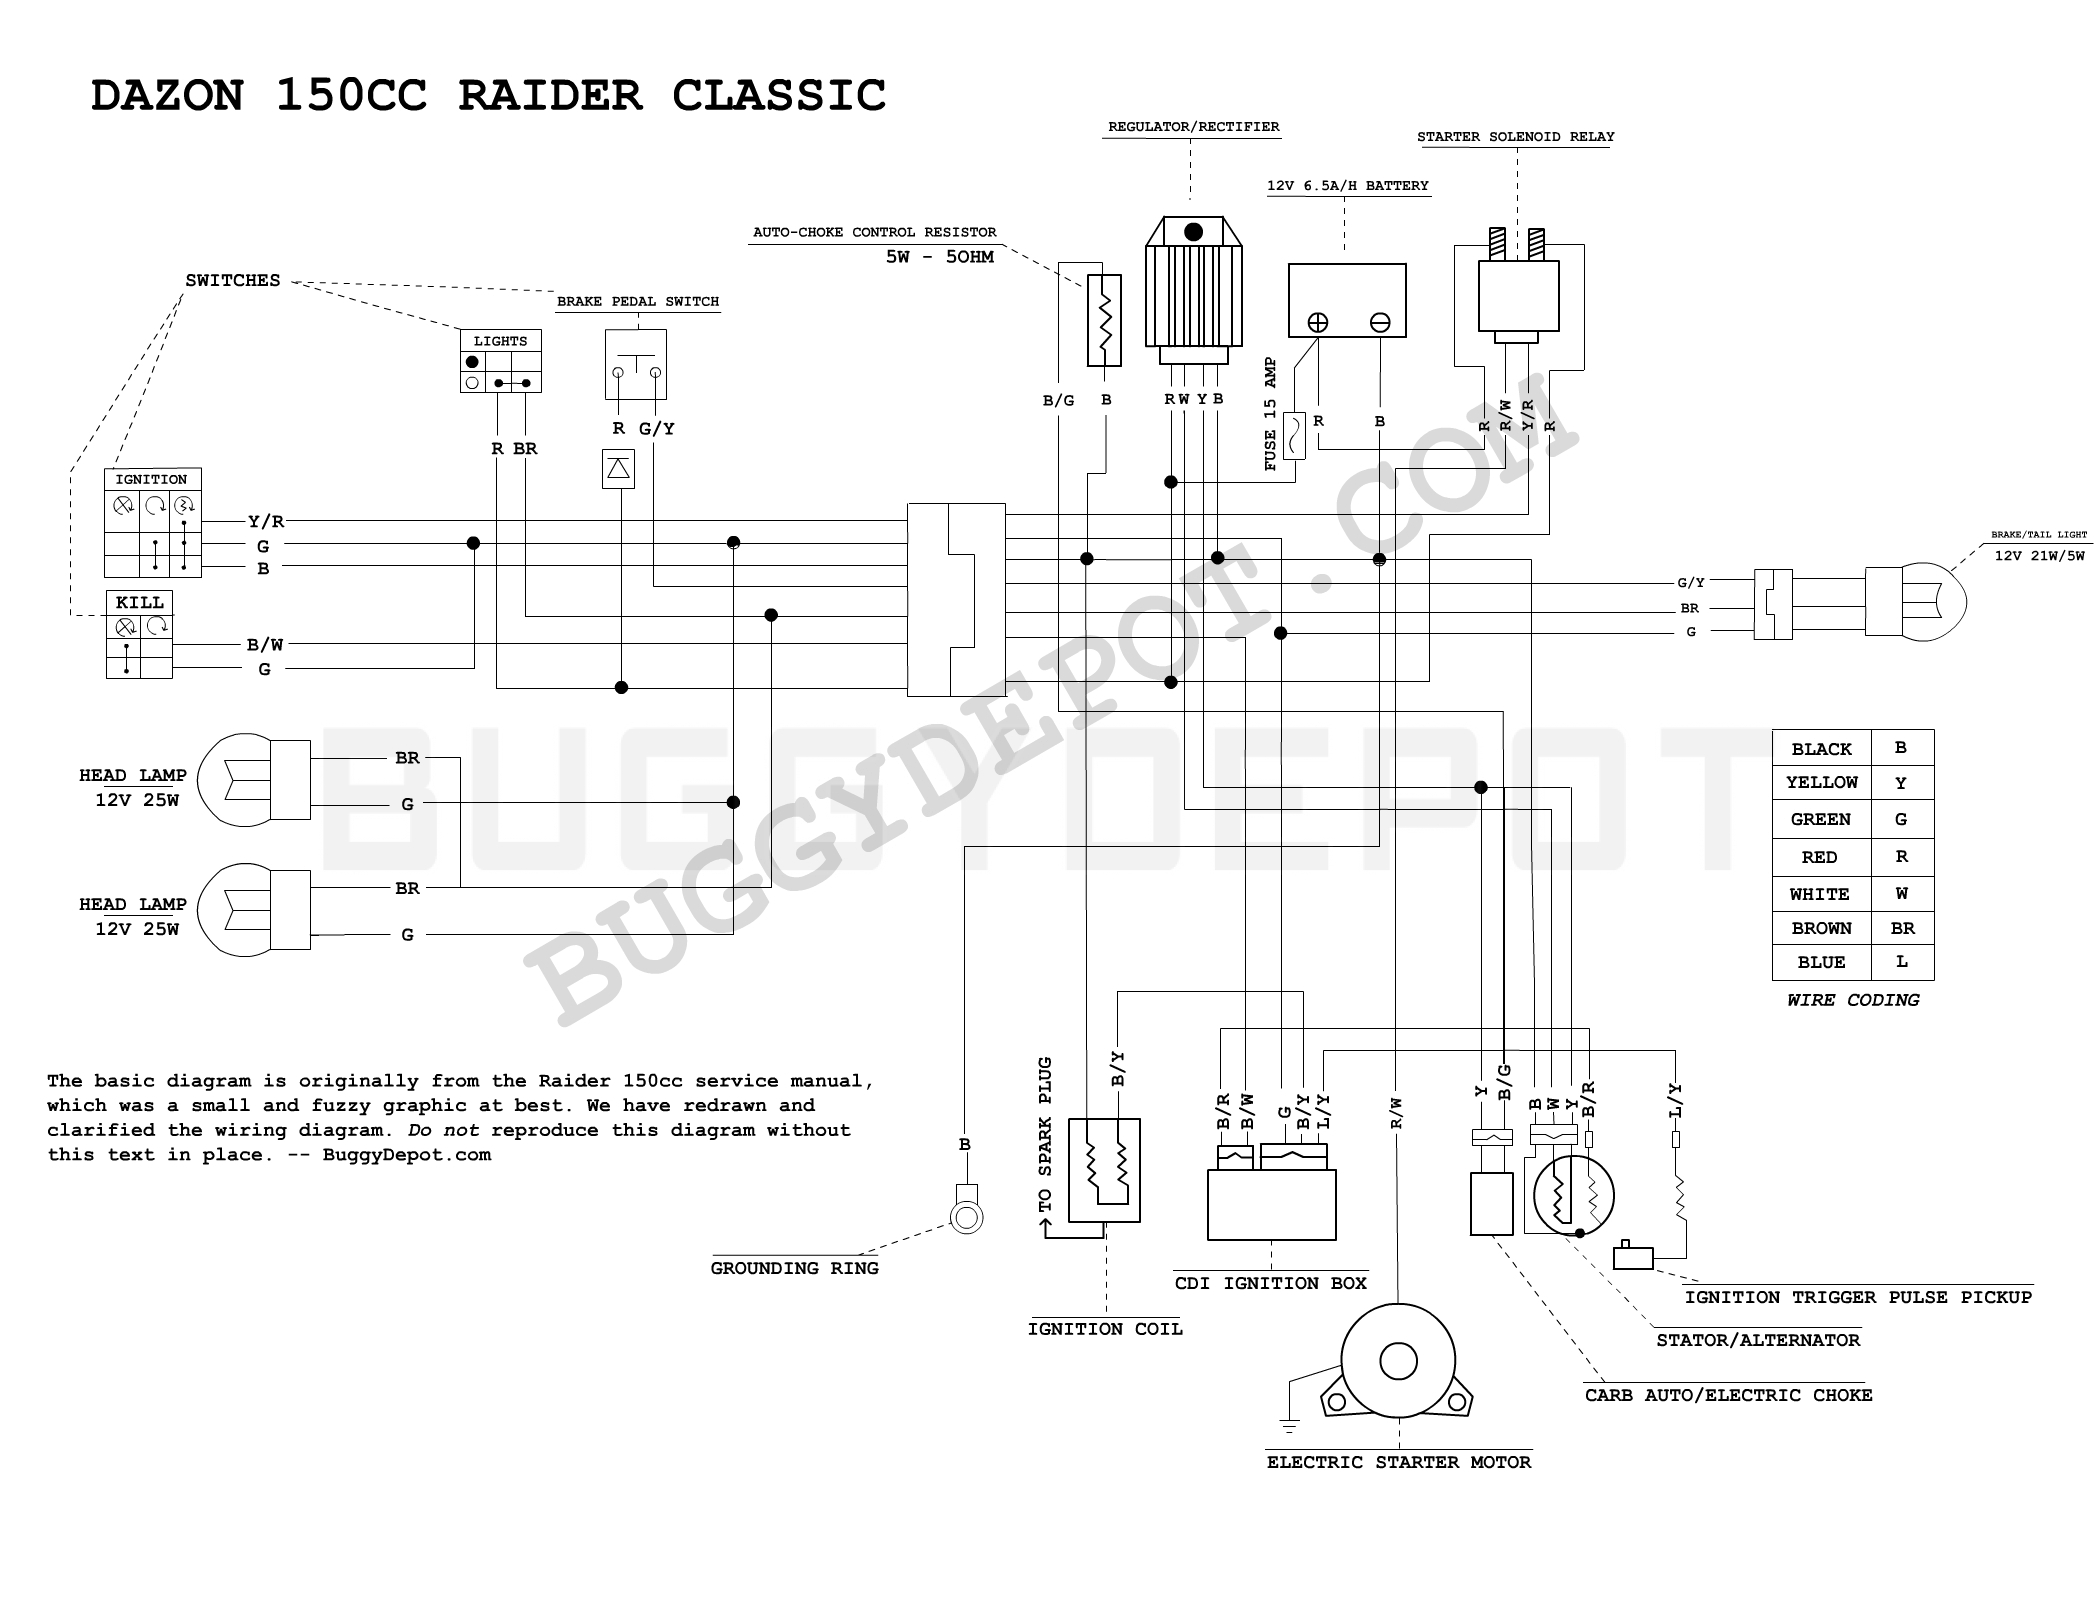 yerf dog 150cc wiring diagram go kart buggy depot technical center rh buggydepot com Wiring Diagram for Sunl Quad Sunl 110 ATV Wiring Diagram